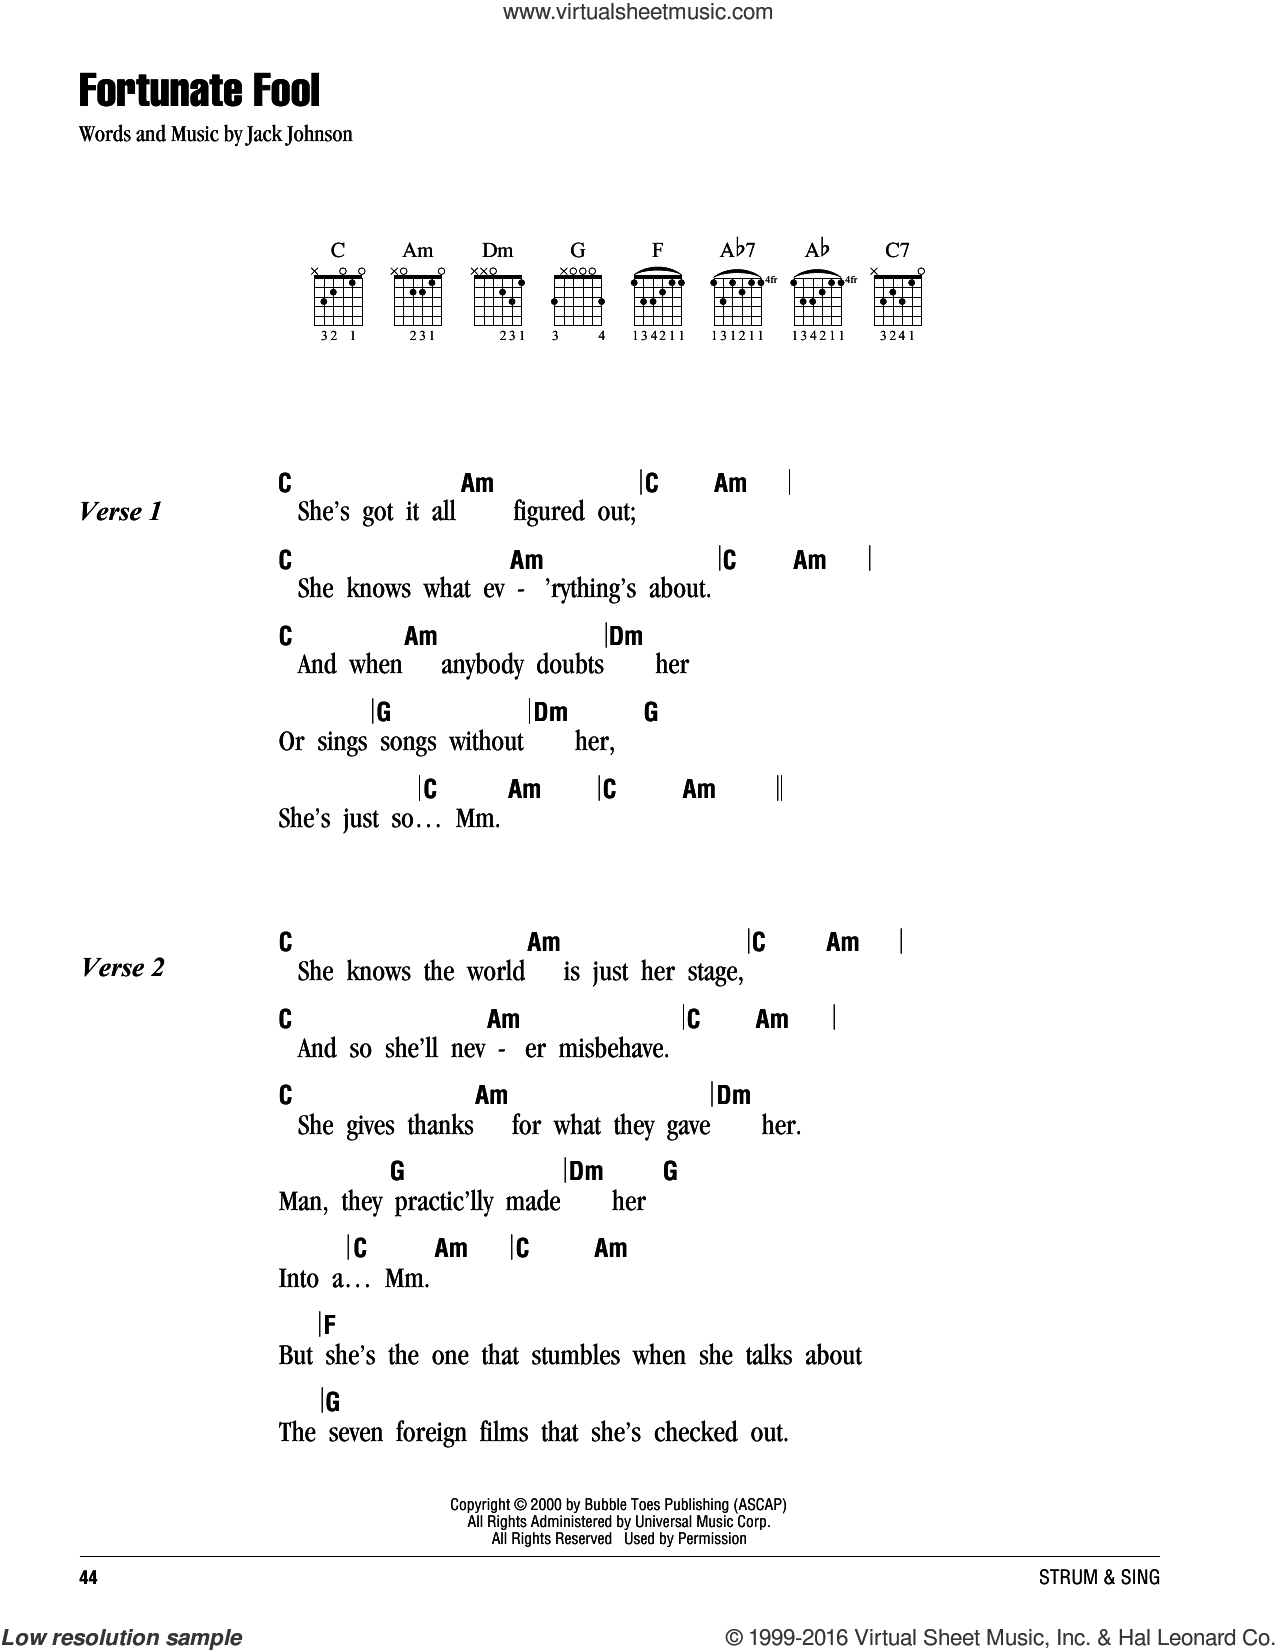 Fortunate Fool sheet music for guitar (chords) by Jack Johnson. Score Image Preview.